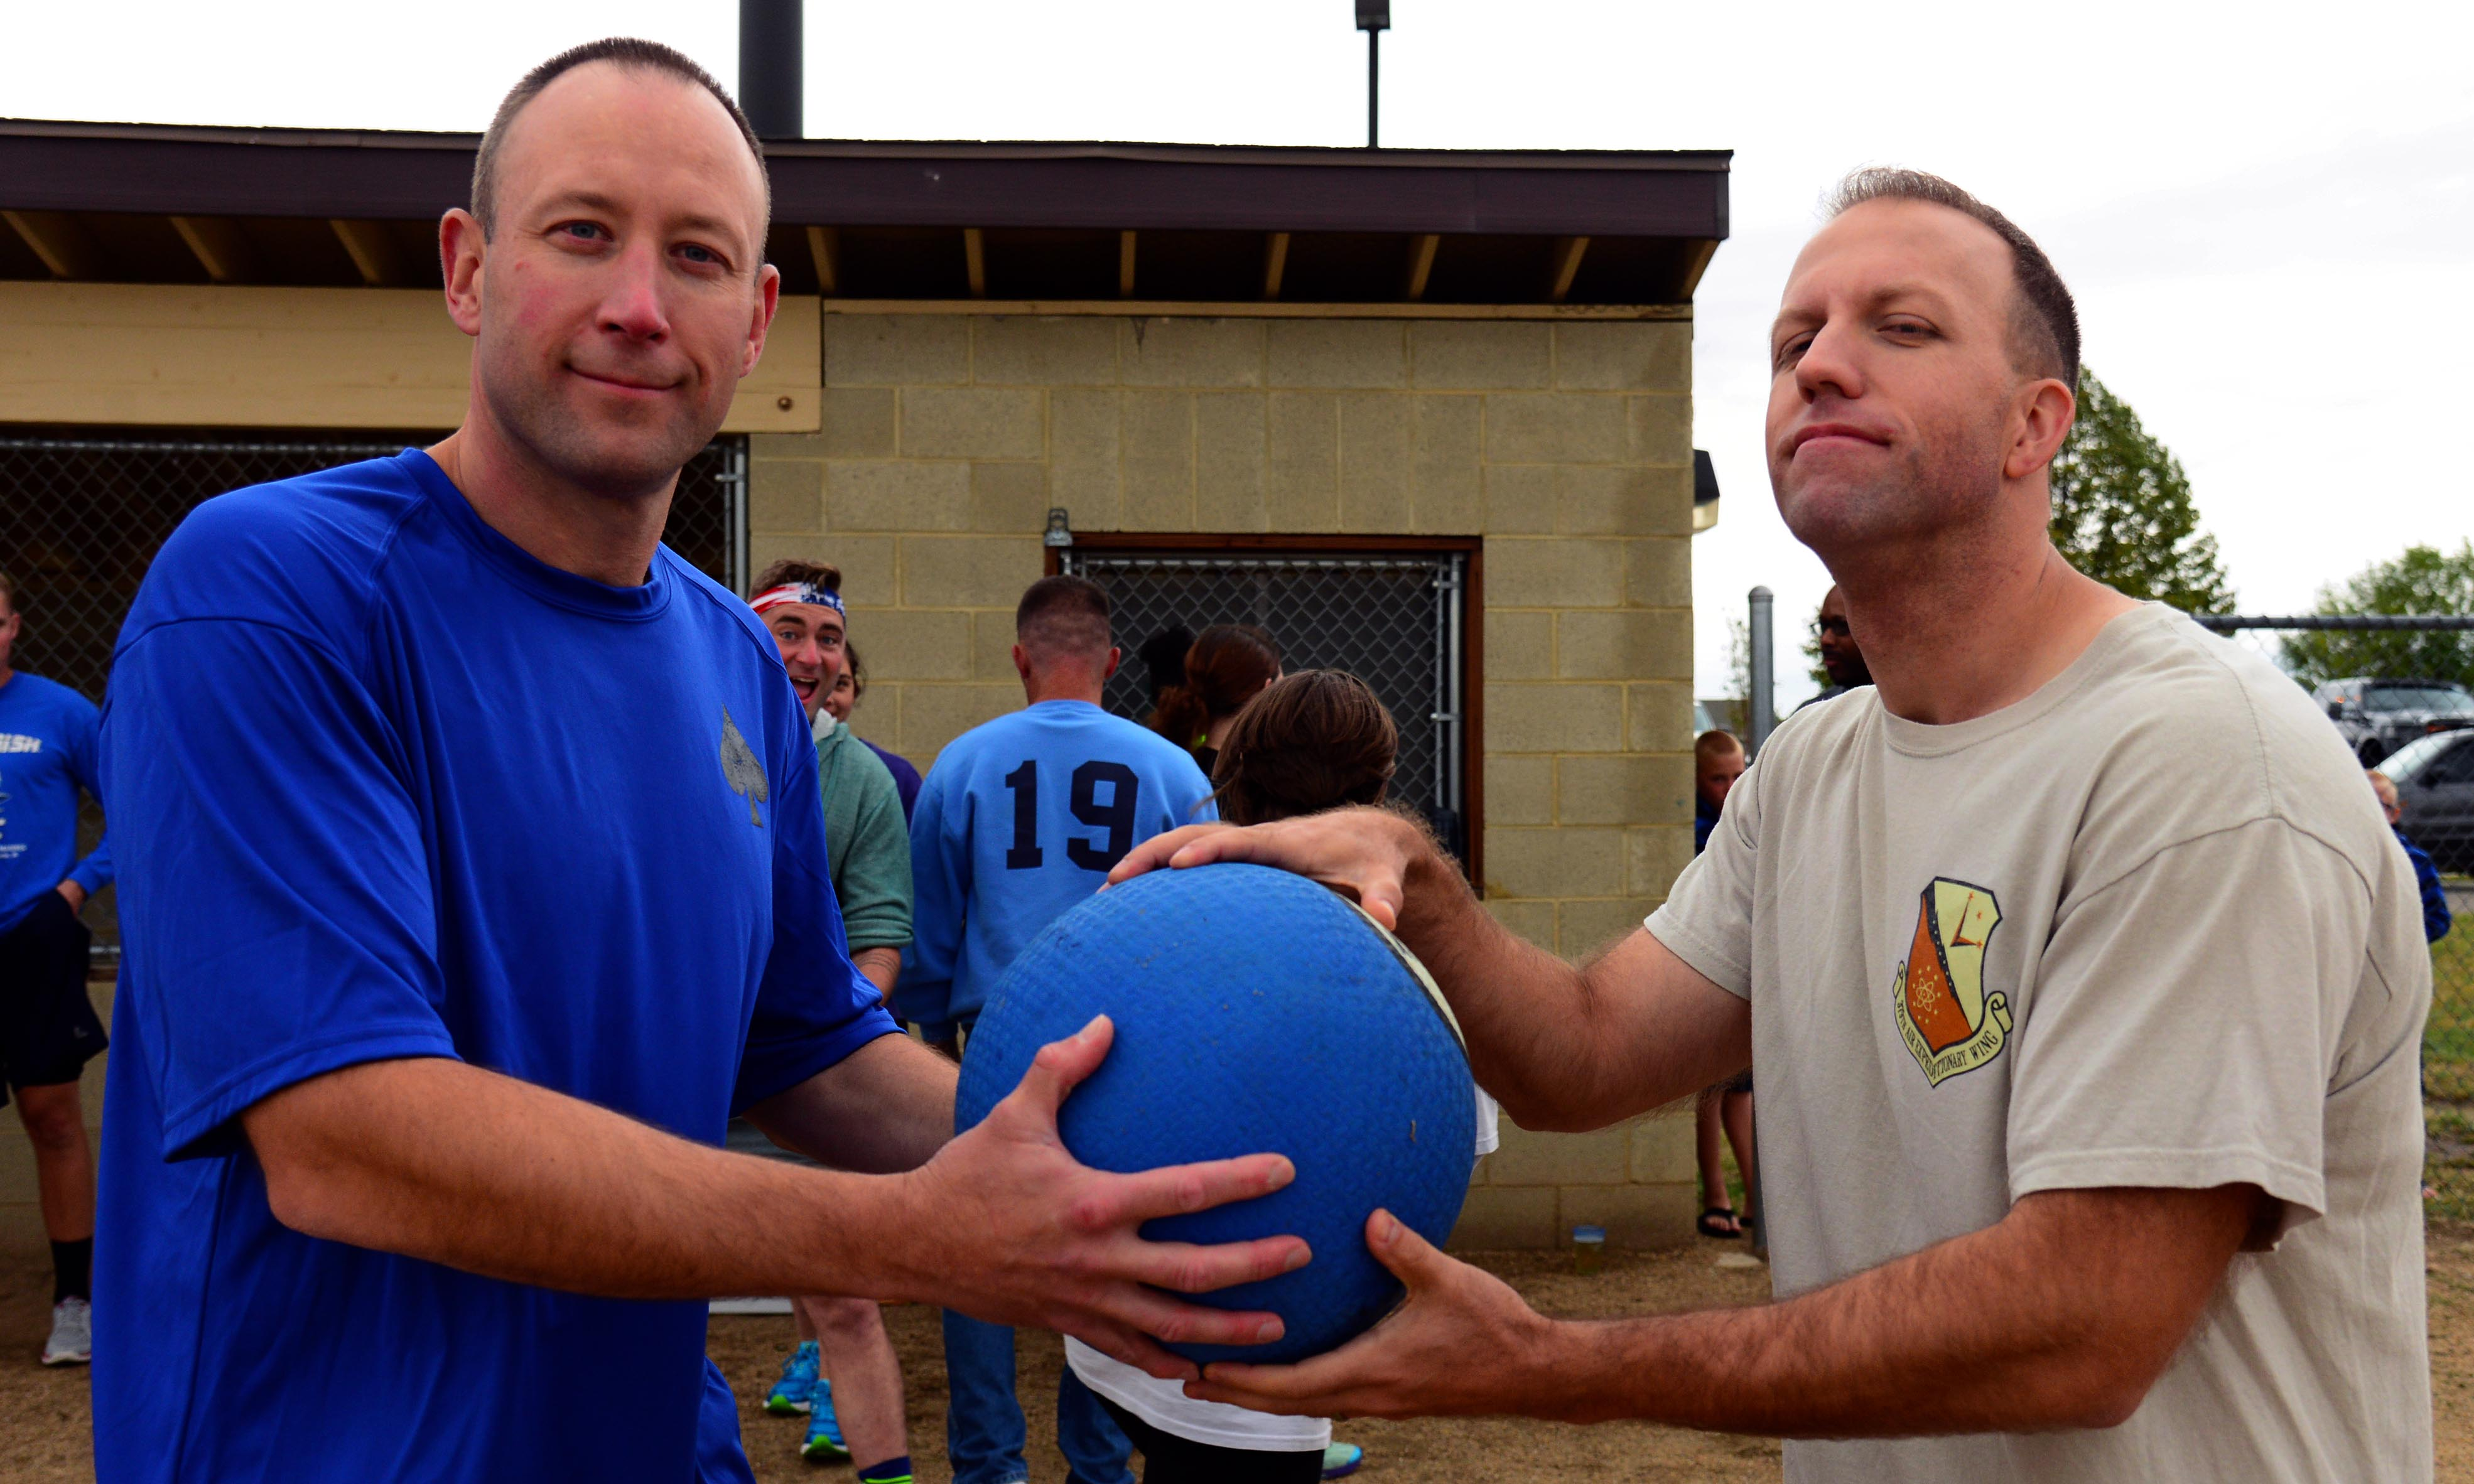 Kickball League Encourages Camaraderie Teamwork Malmstrom Air